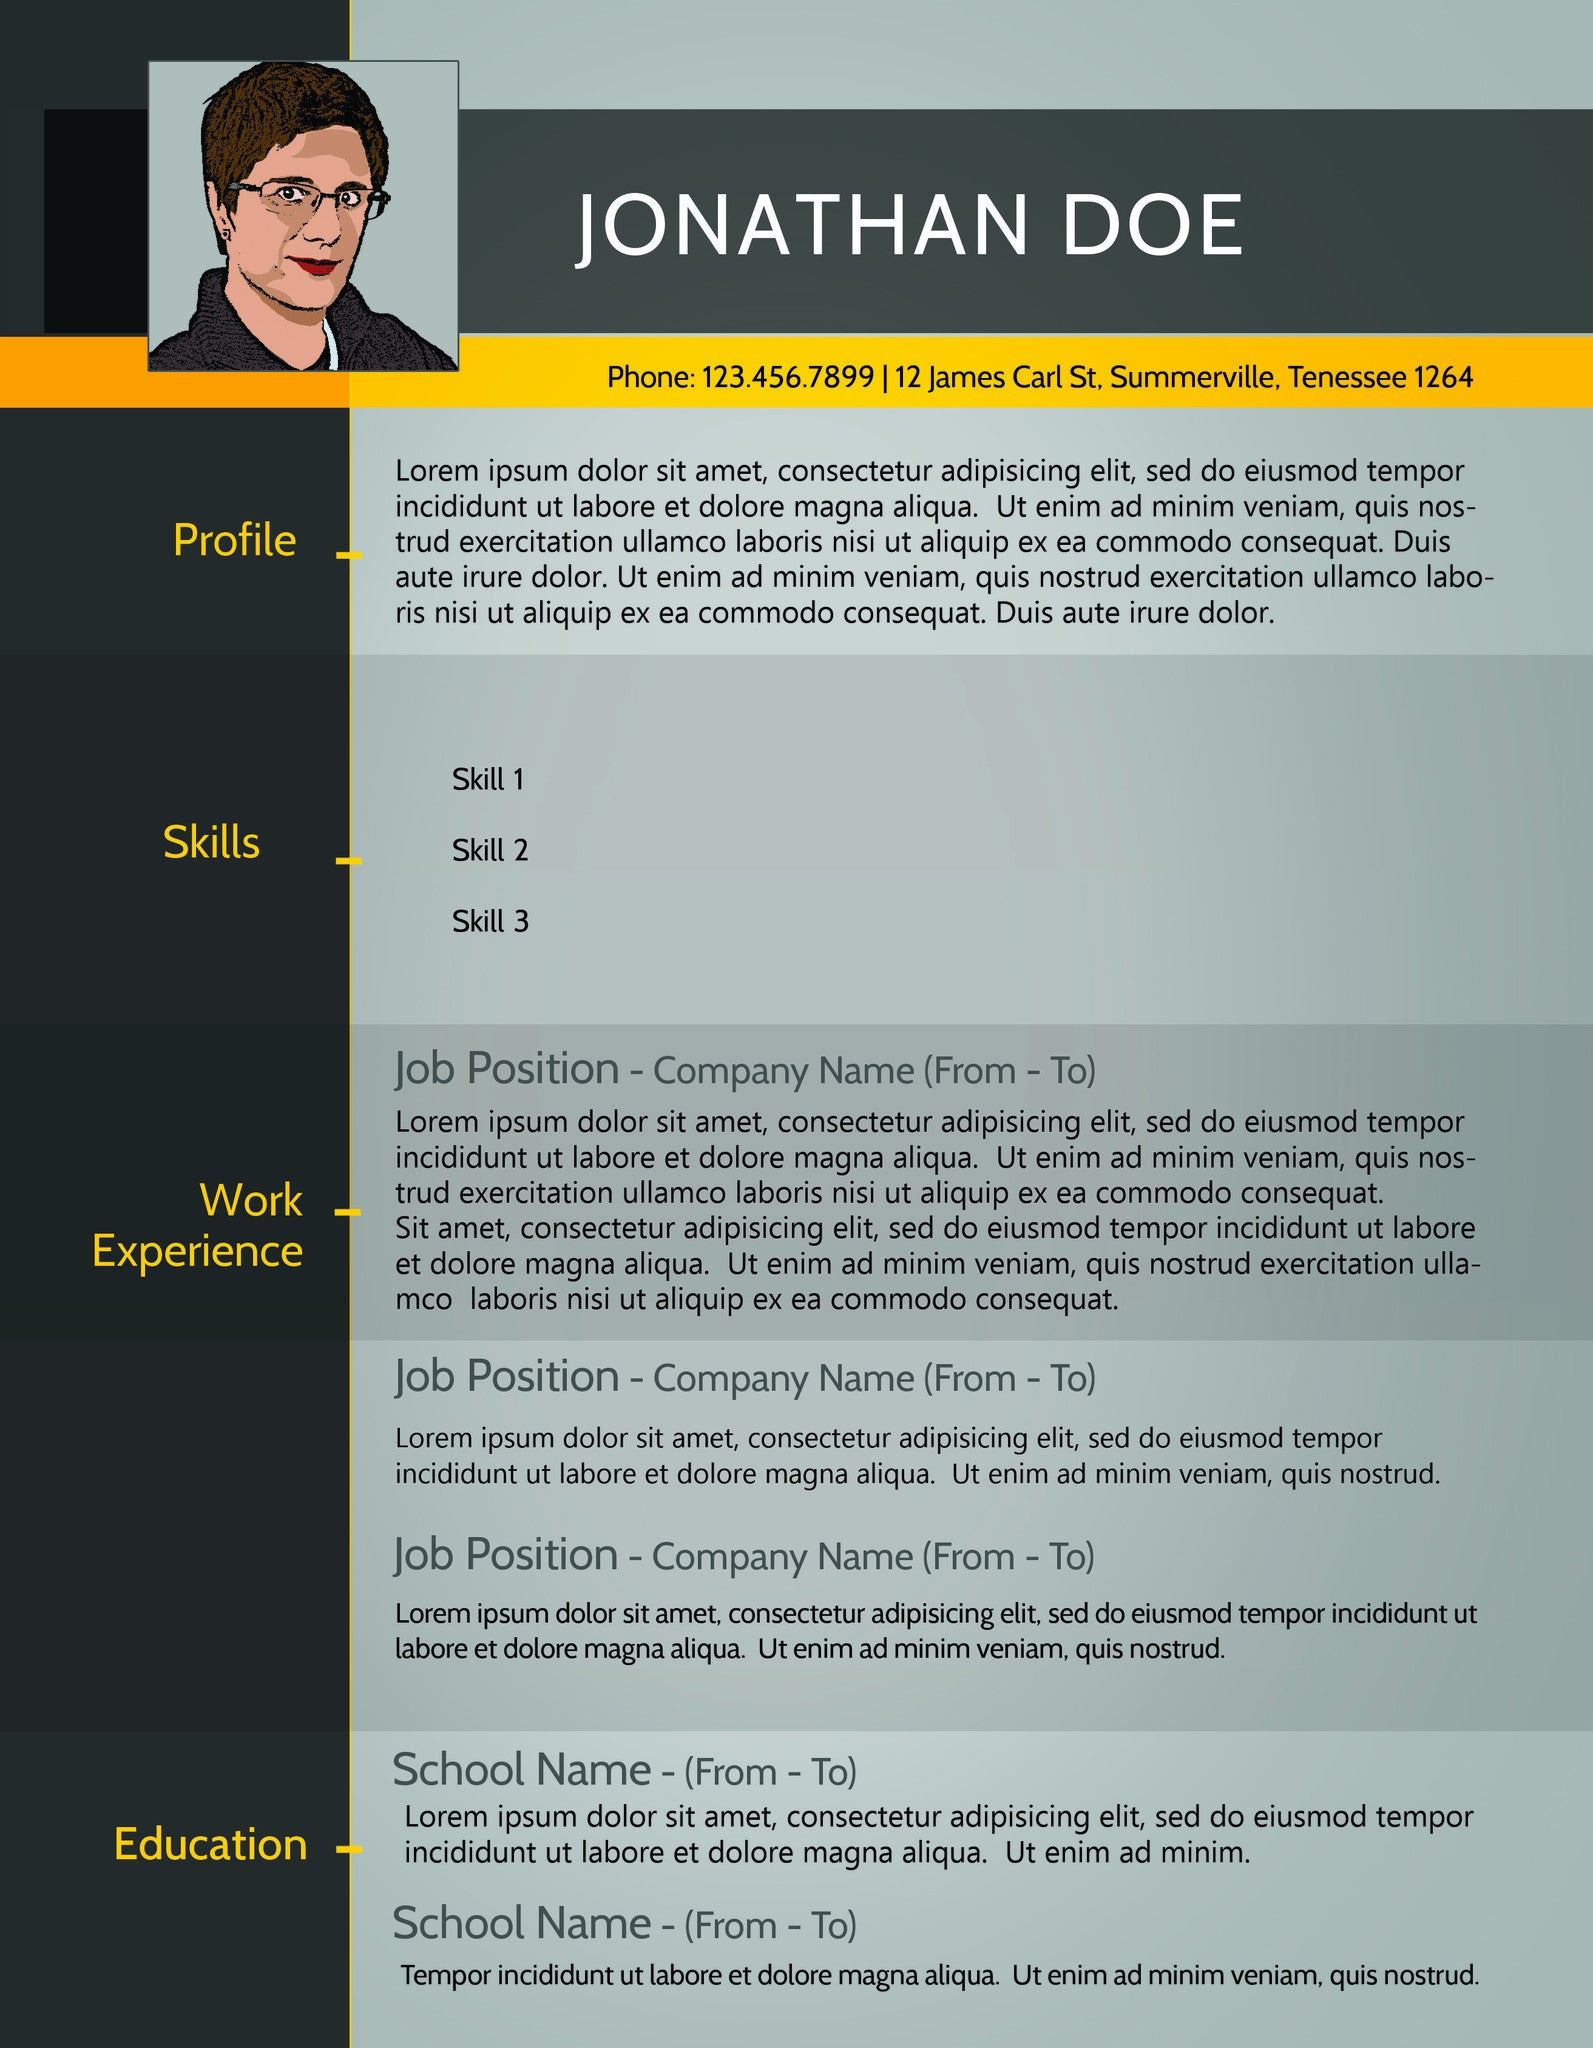 Resume 013 Resumes Experts